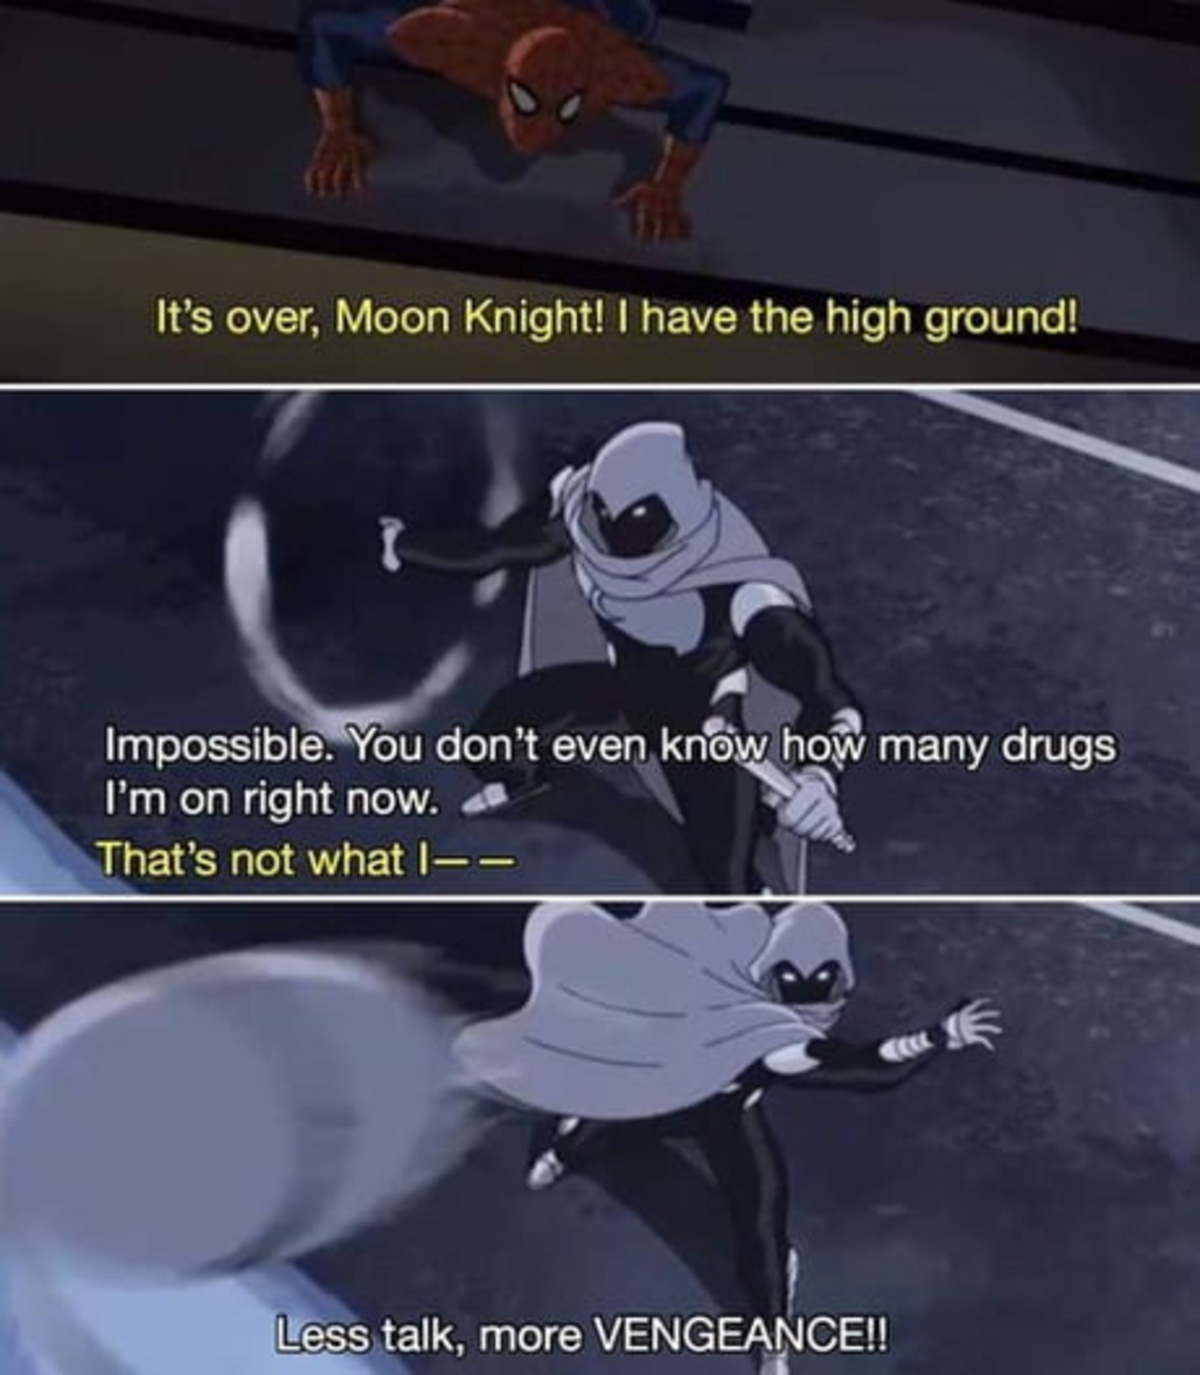 Ketamine's one hell of a drug. .. Doesn't matter if you have the high-ground or if you're even sent to another dimension entirely. You owe Moon Knight money, that is going to come get you.